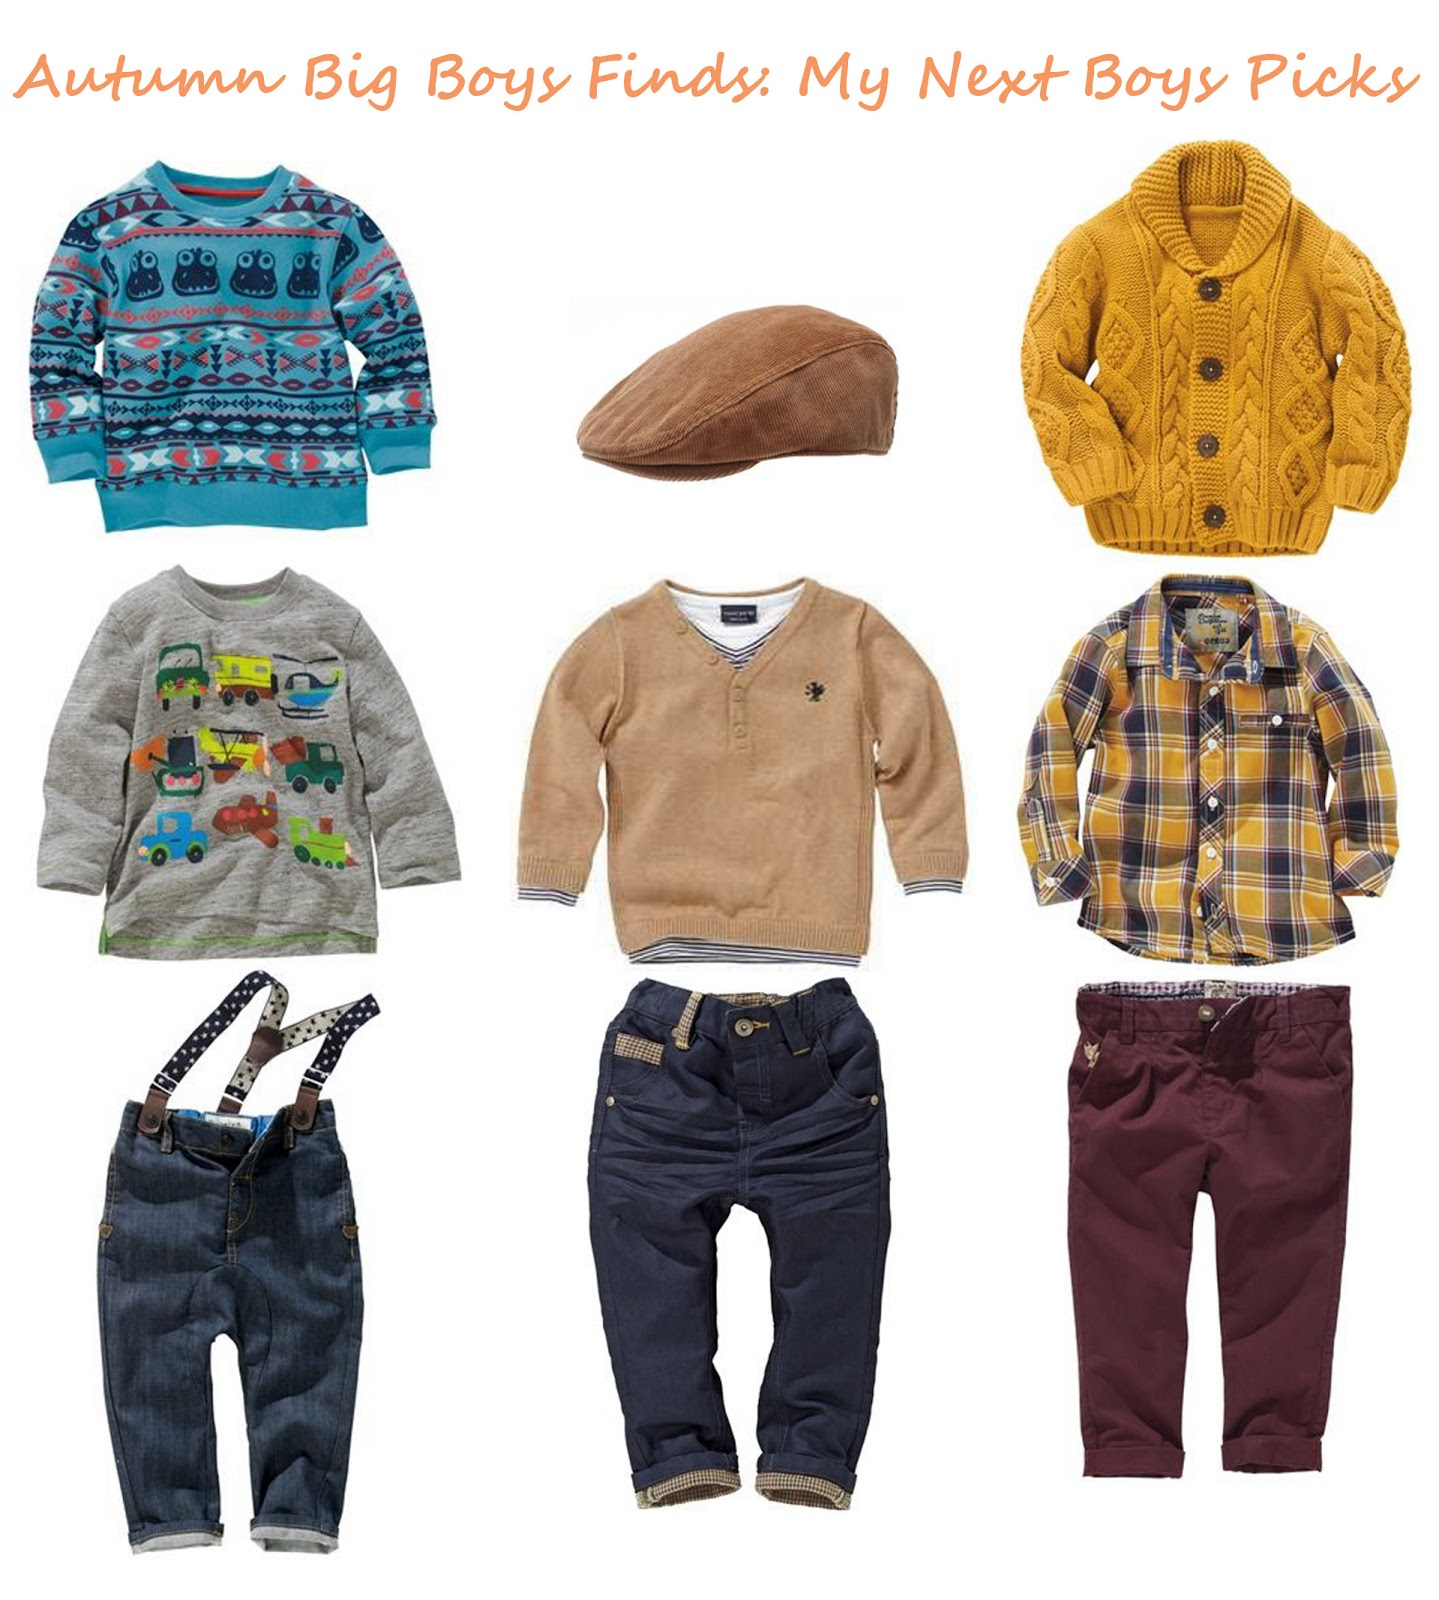 Boys' Clothing from shopnow-vjpmehag.cf Whether you're looking for lightweight, activewear for your boy for running and playing, or straight-leg chinos and button-down shirts for an upcoming special event, shopnow-vjpmehag.cf carries boys' clothing for your choice of season, occasion, and function.